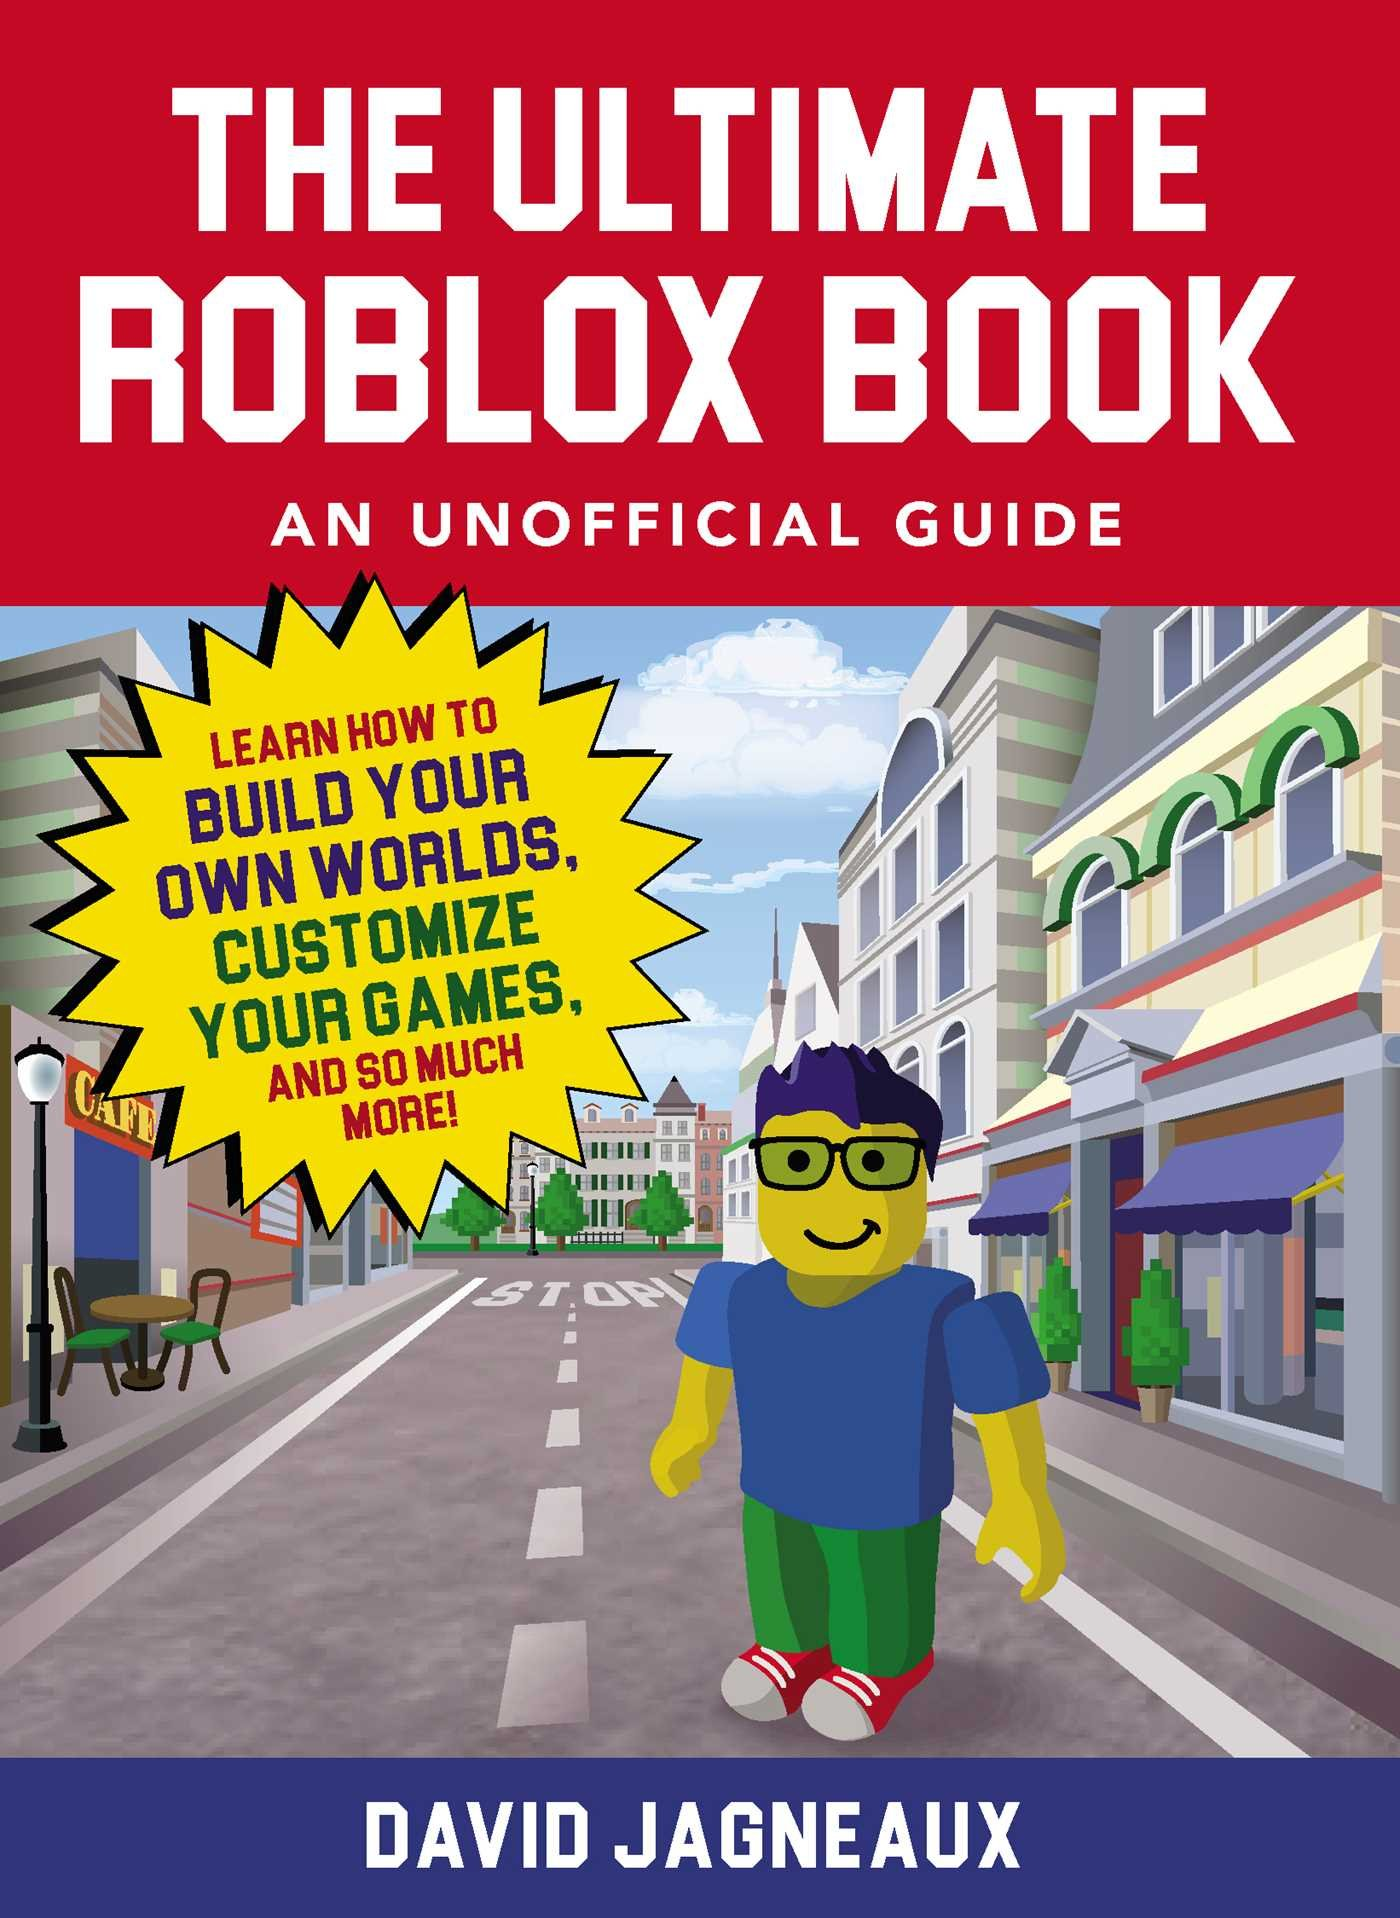 Amazoncom The Ultimate Roblox Book An Unofficial Guide - best roblox games for tablet 2018